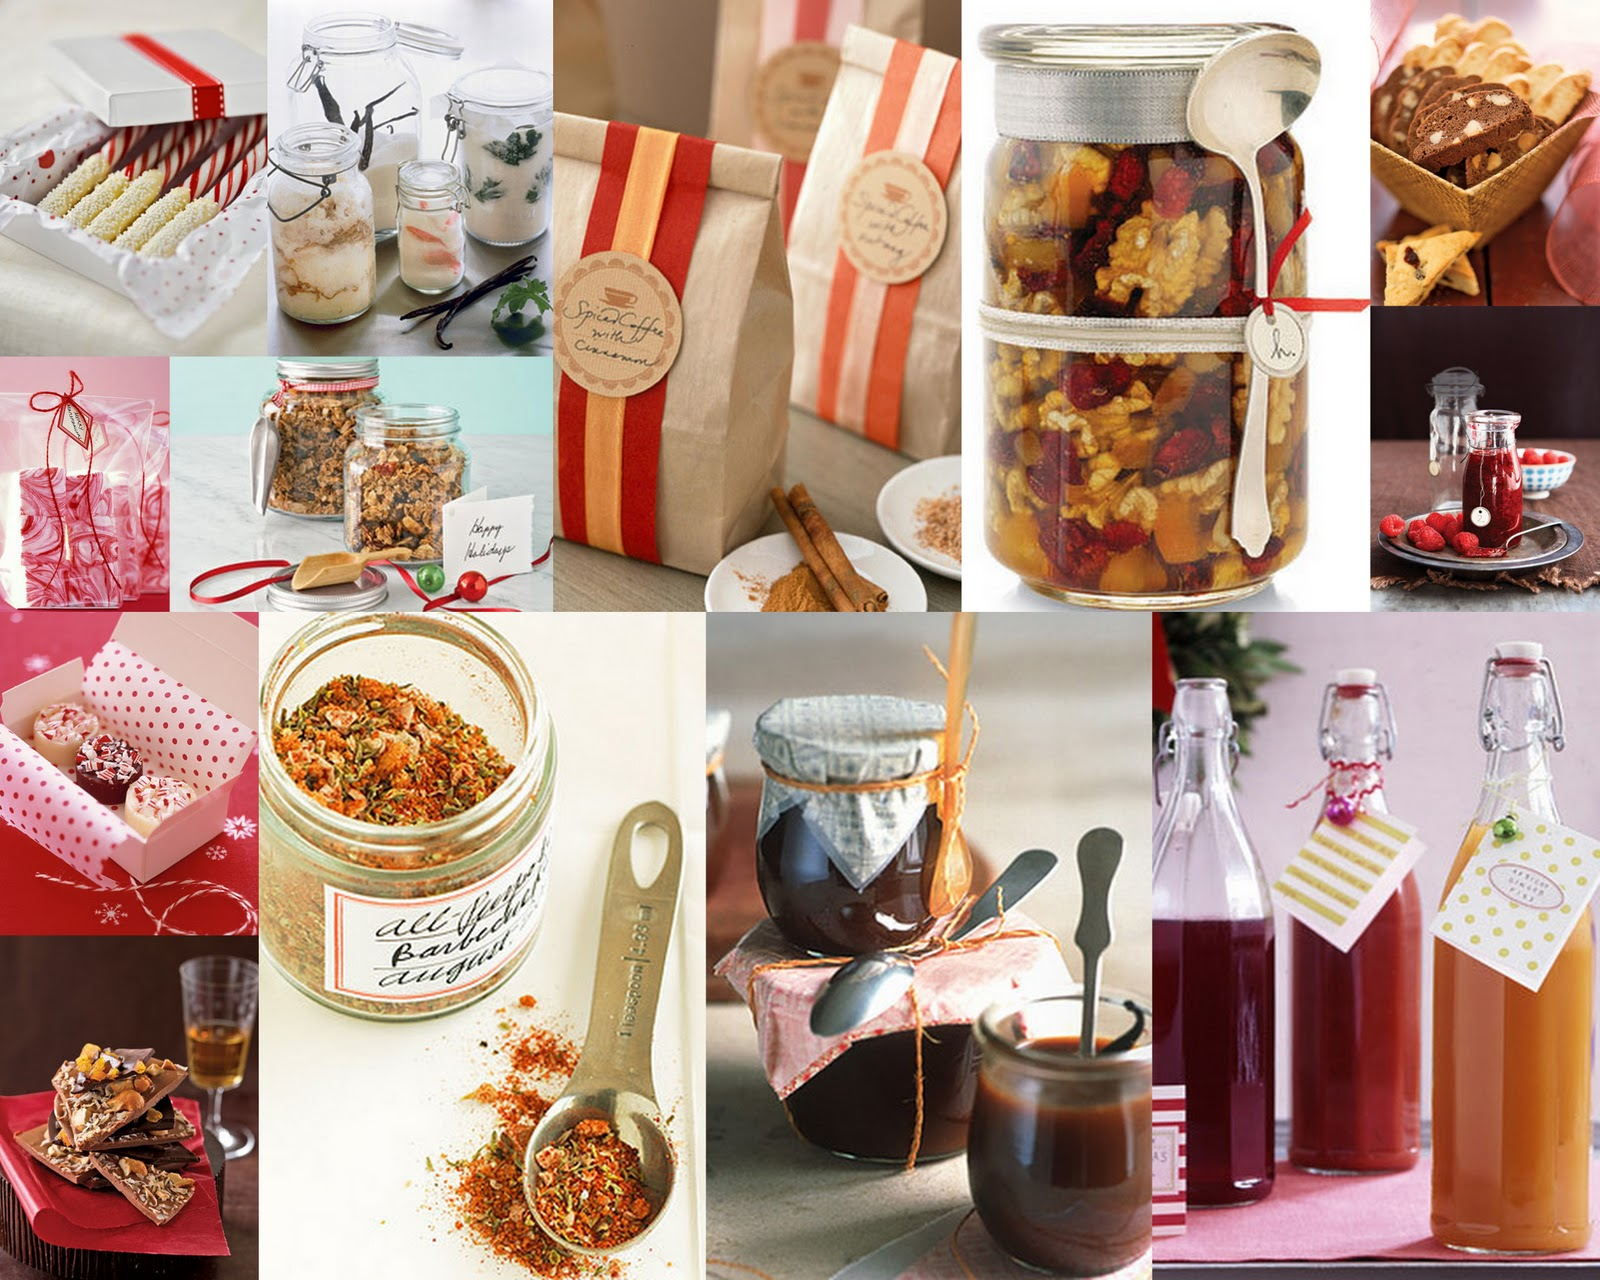 http://www.simplyfoodlove.com/2010/12/simply-homemade-edible-gifts.html